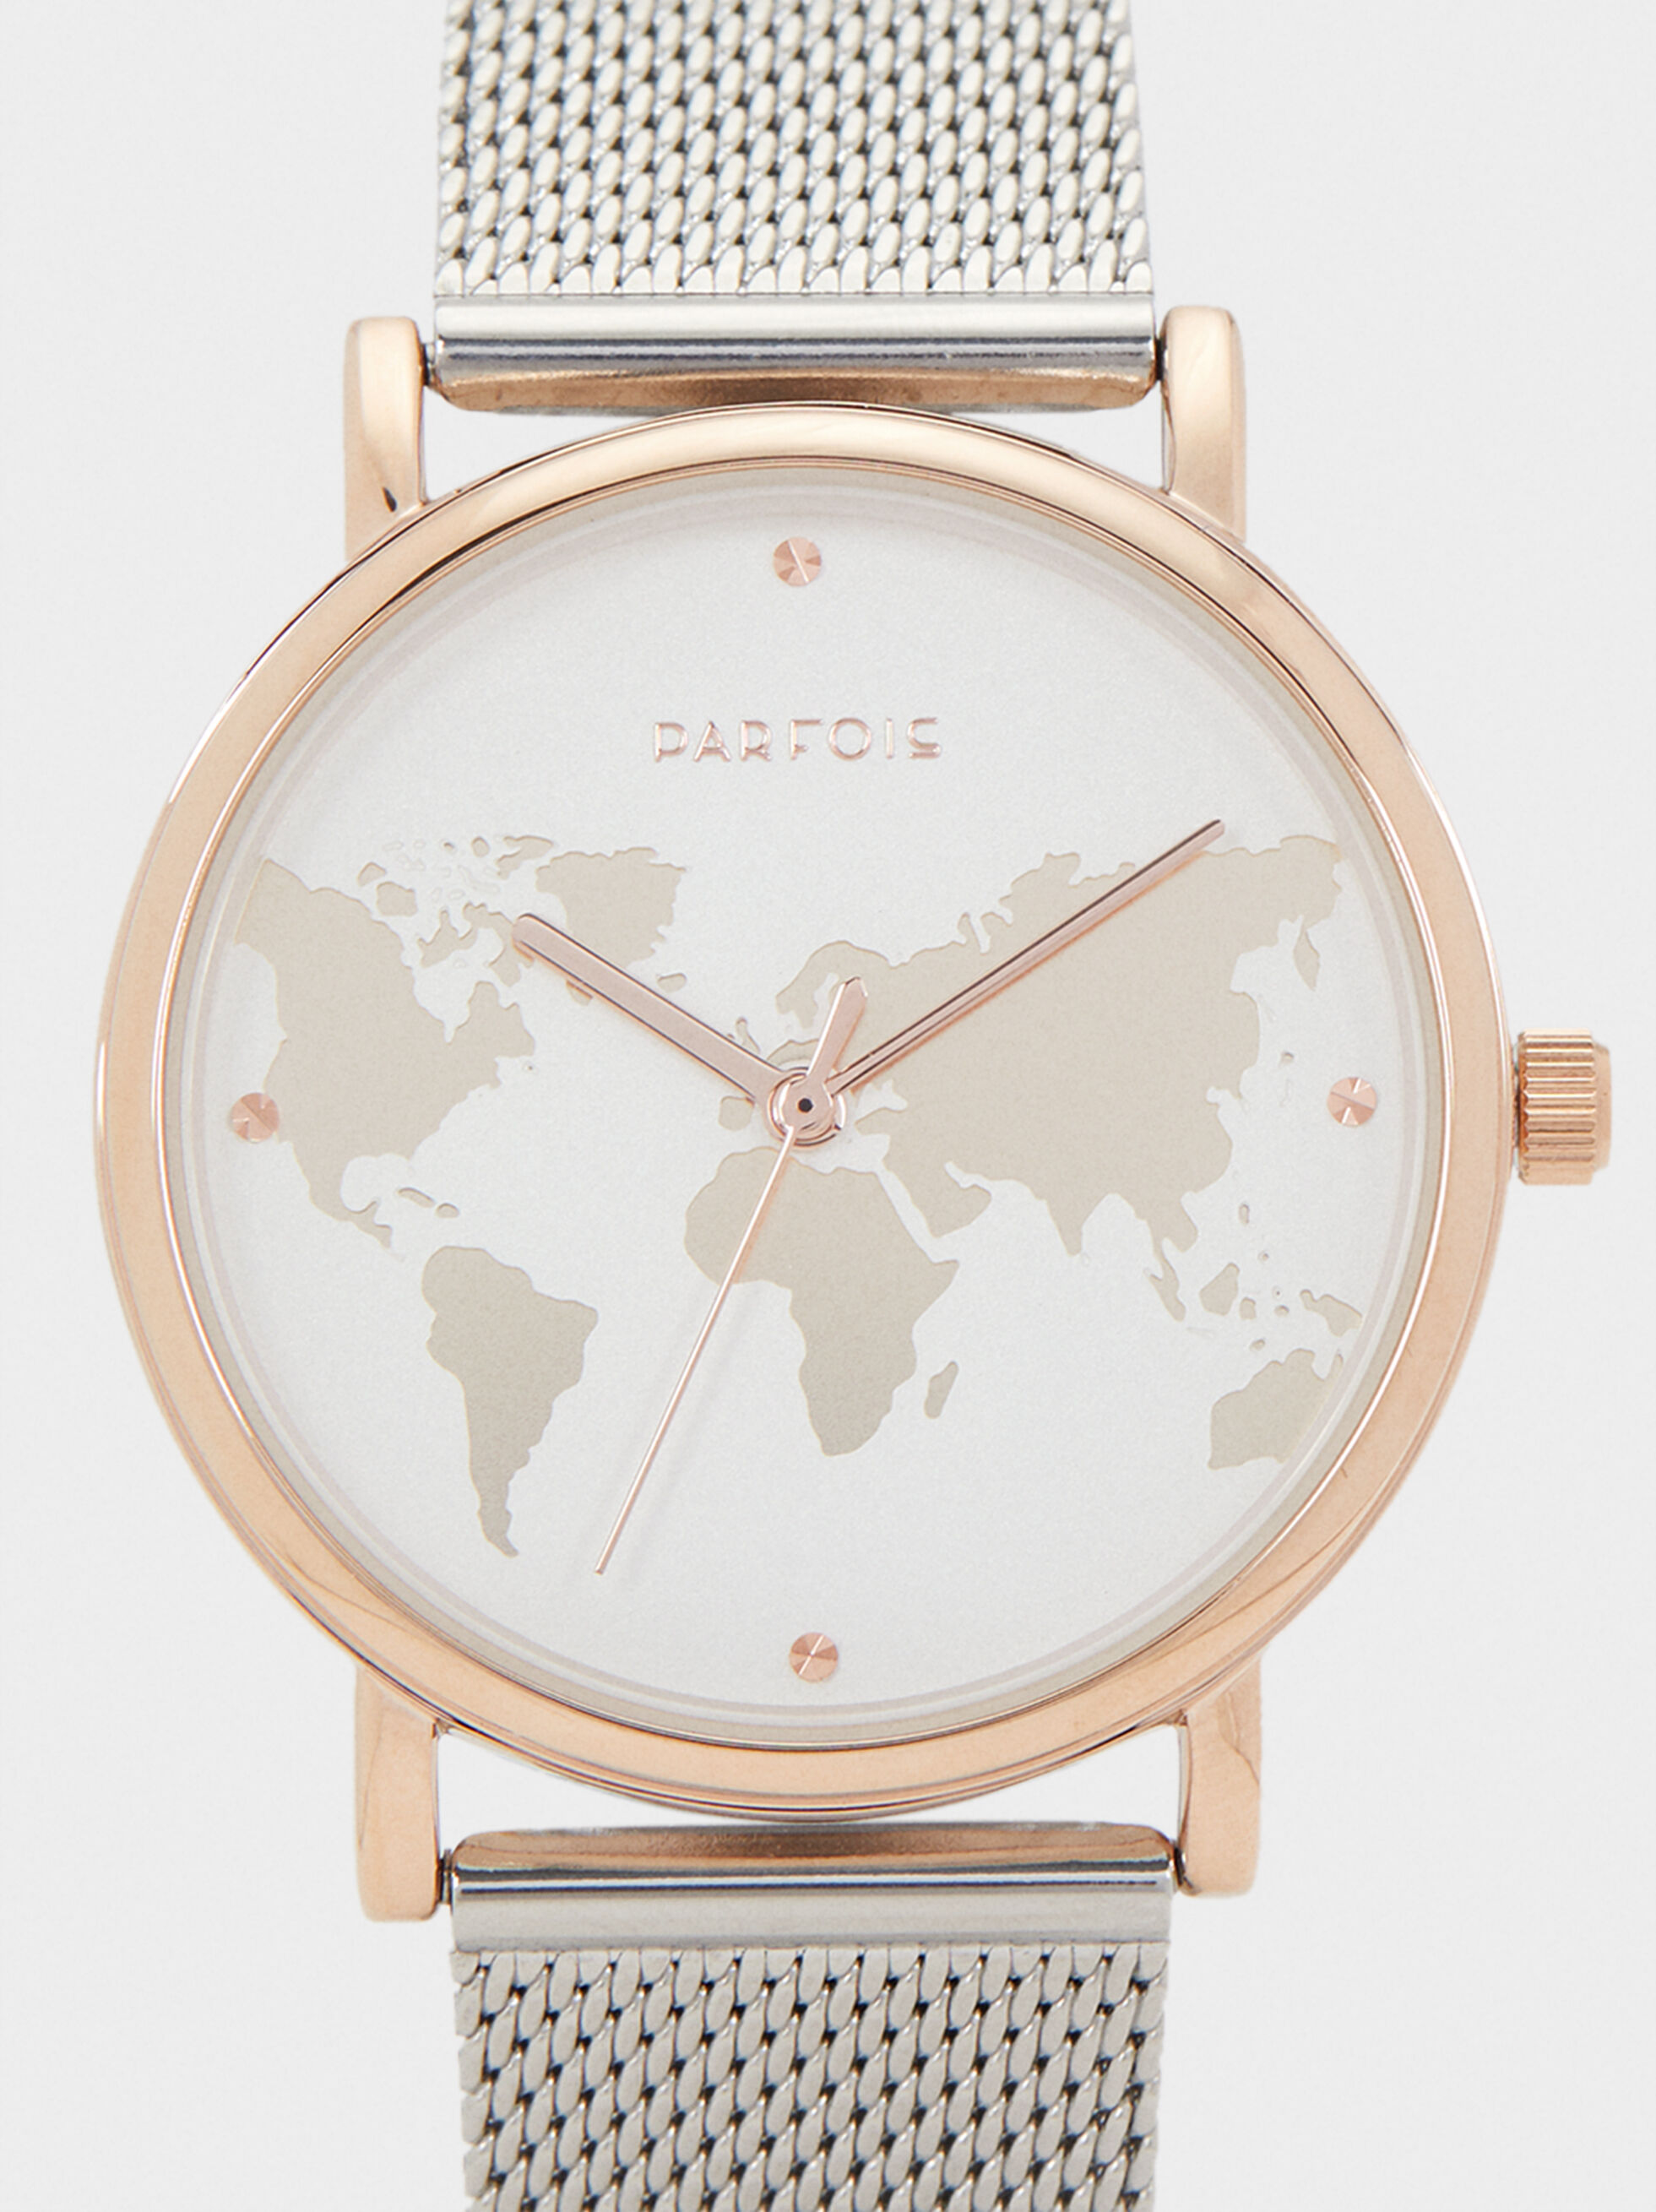 Watch With Steel Strap And World Map Face, Silver, hi-res